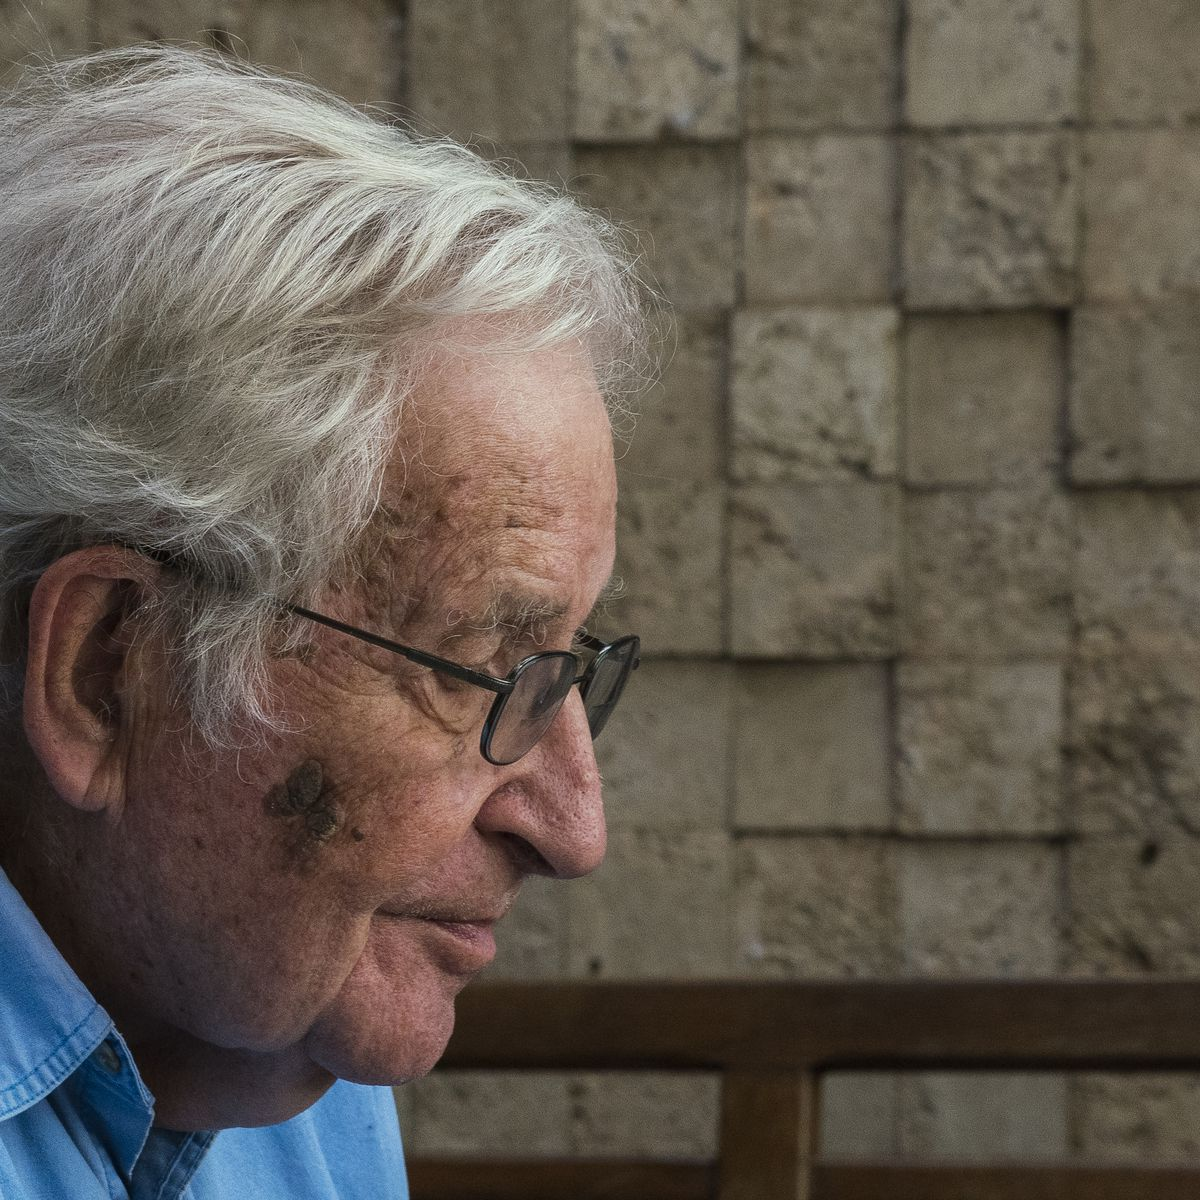 Noam Chomsky in profile